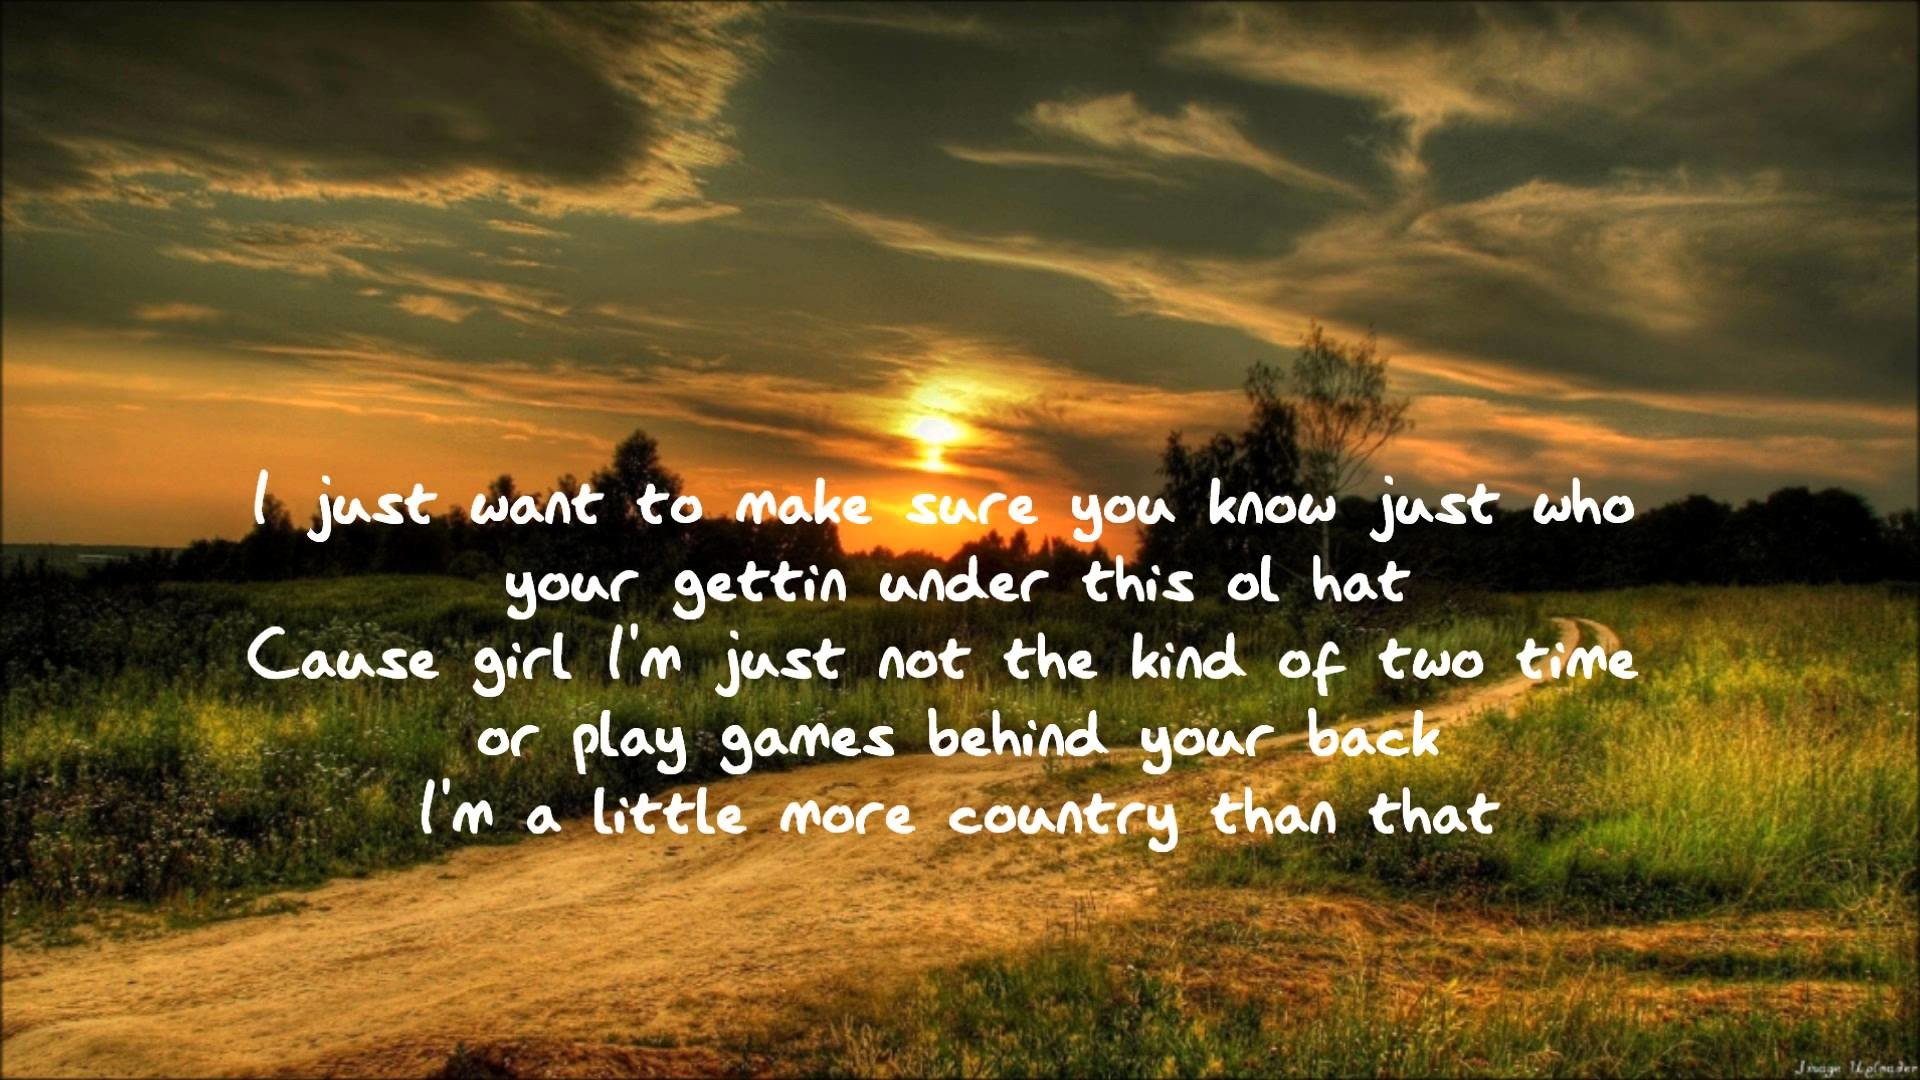 Country Music Desktop Wallpaper 58 Images